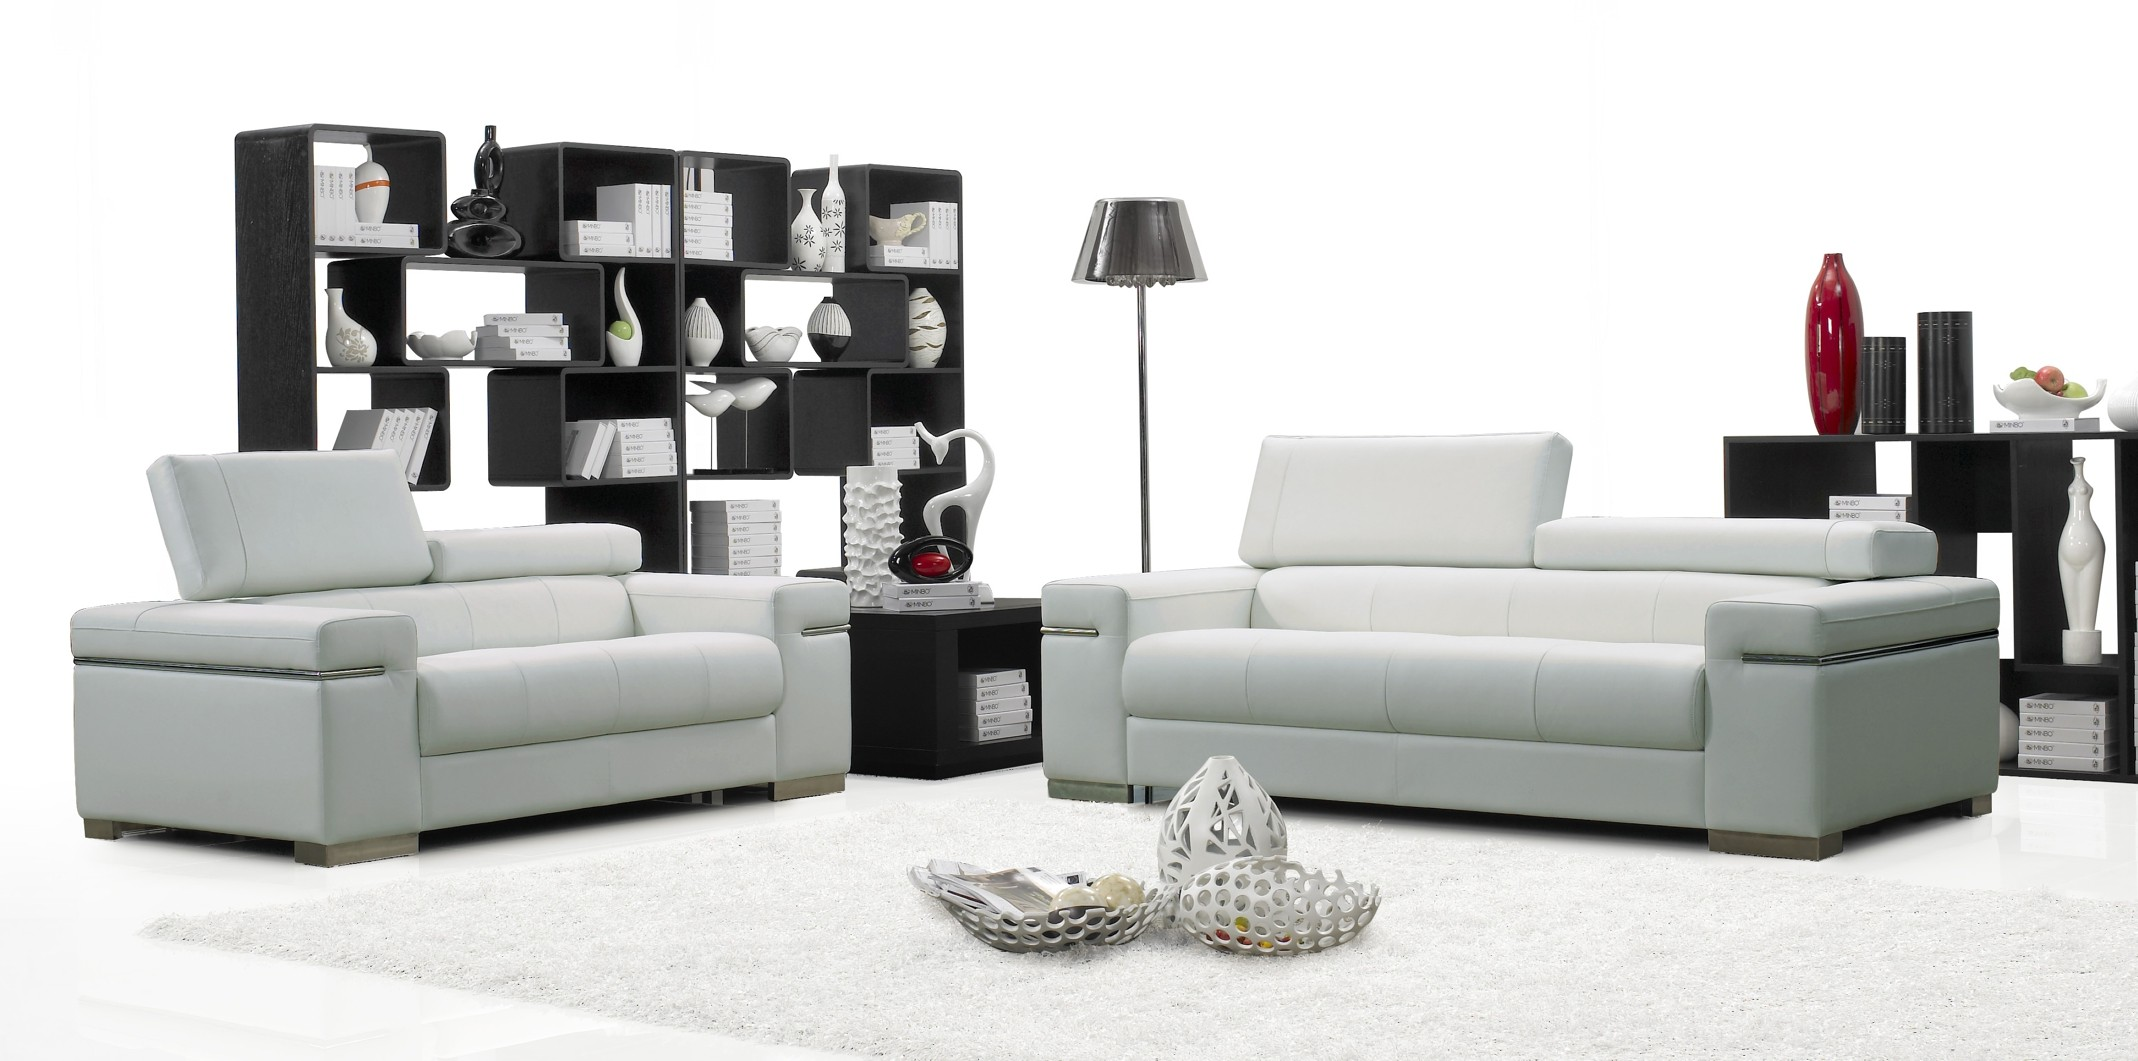 True modern furniture online homesfeed for Home and style furniture